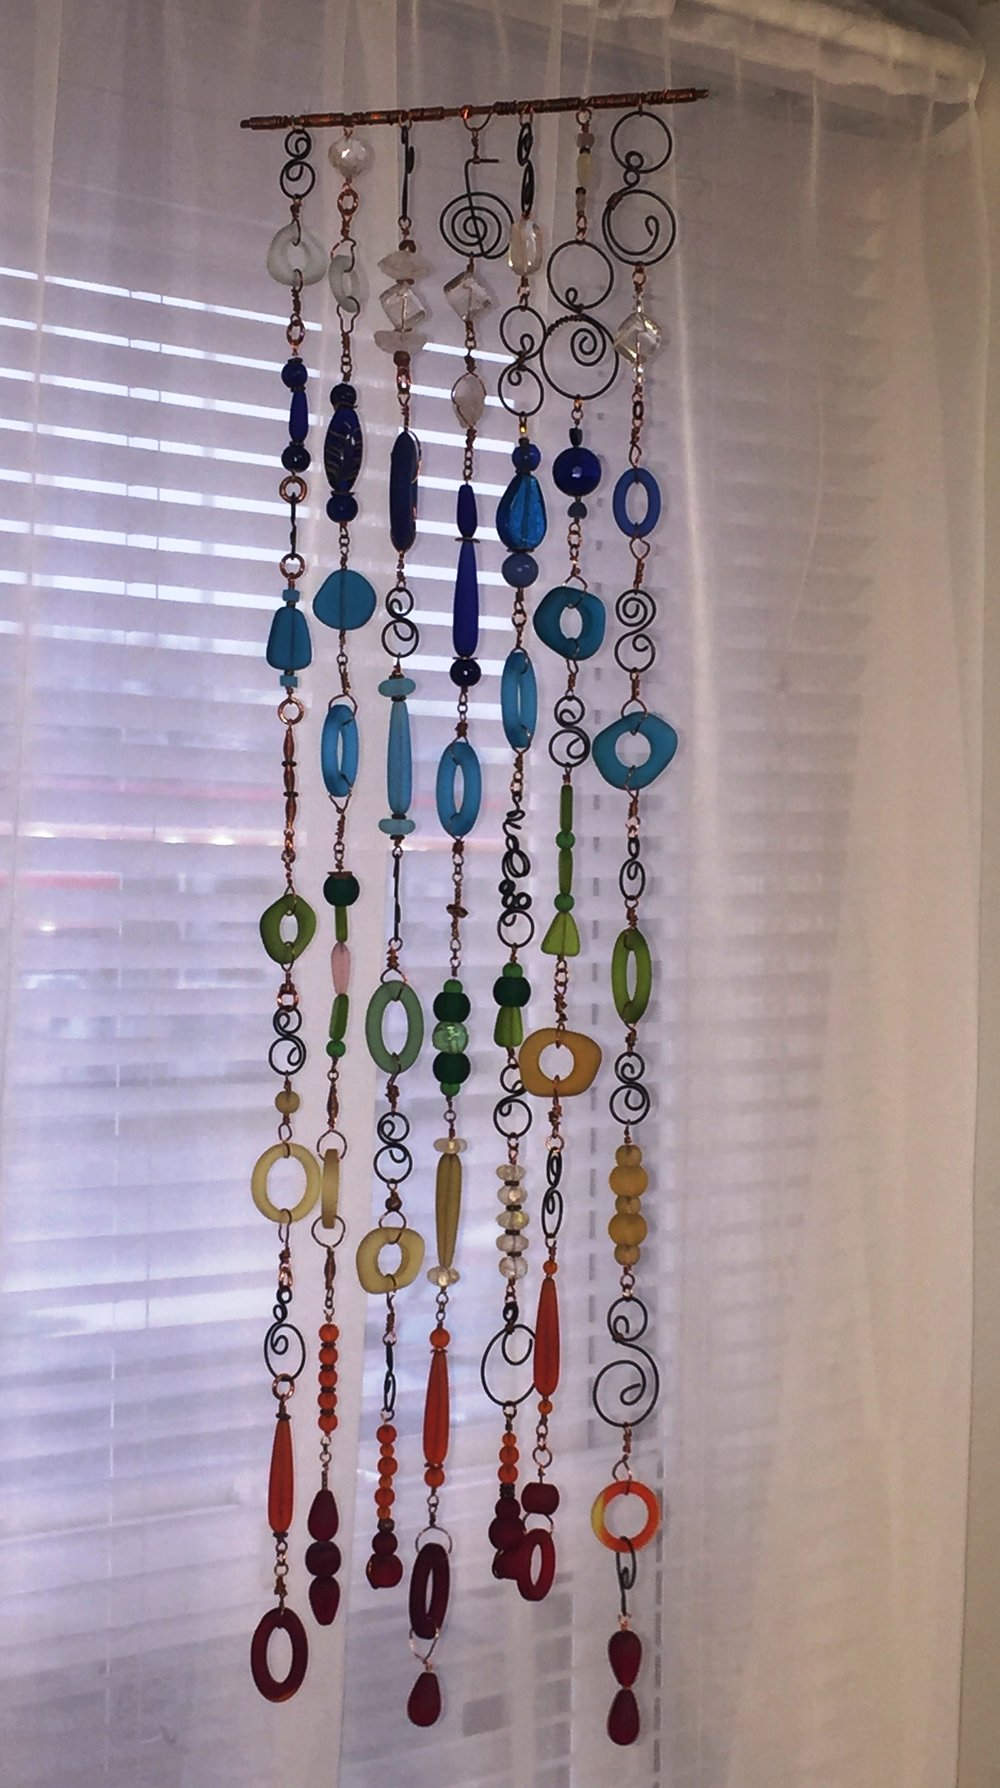 Recycled Glass Chakra Mobile (Sun Catcher) by Kim Marlotte